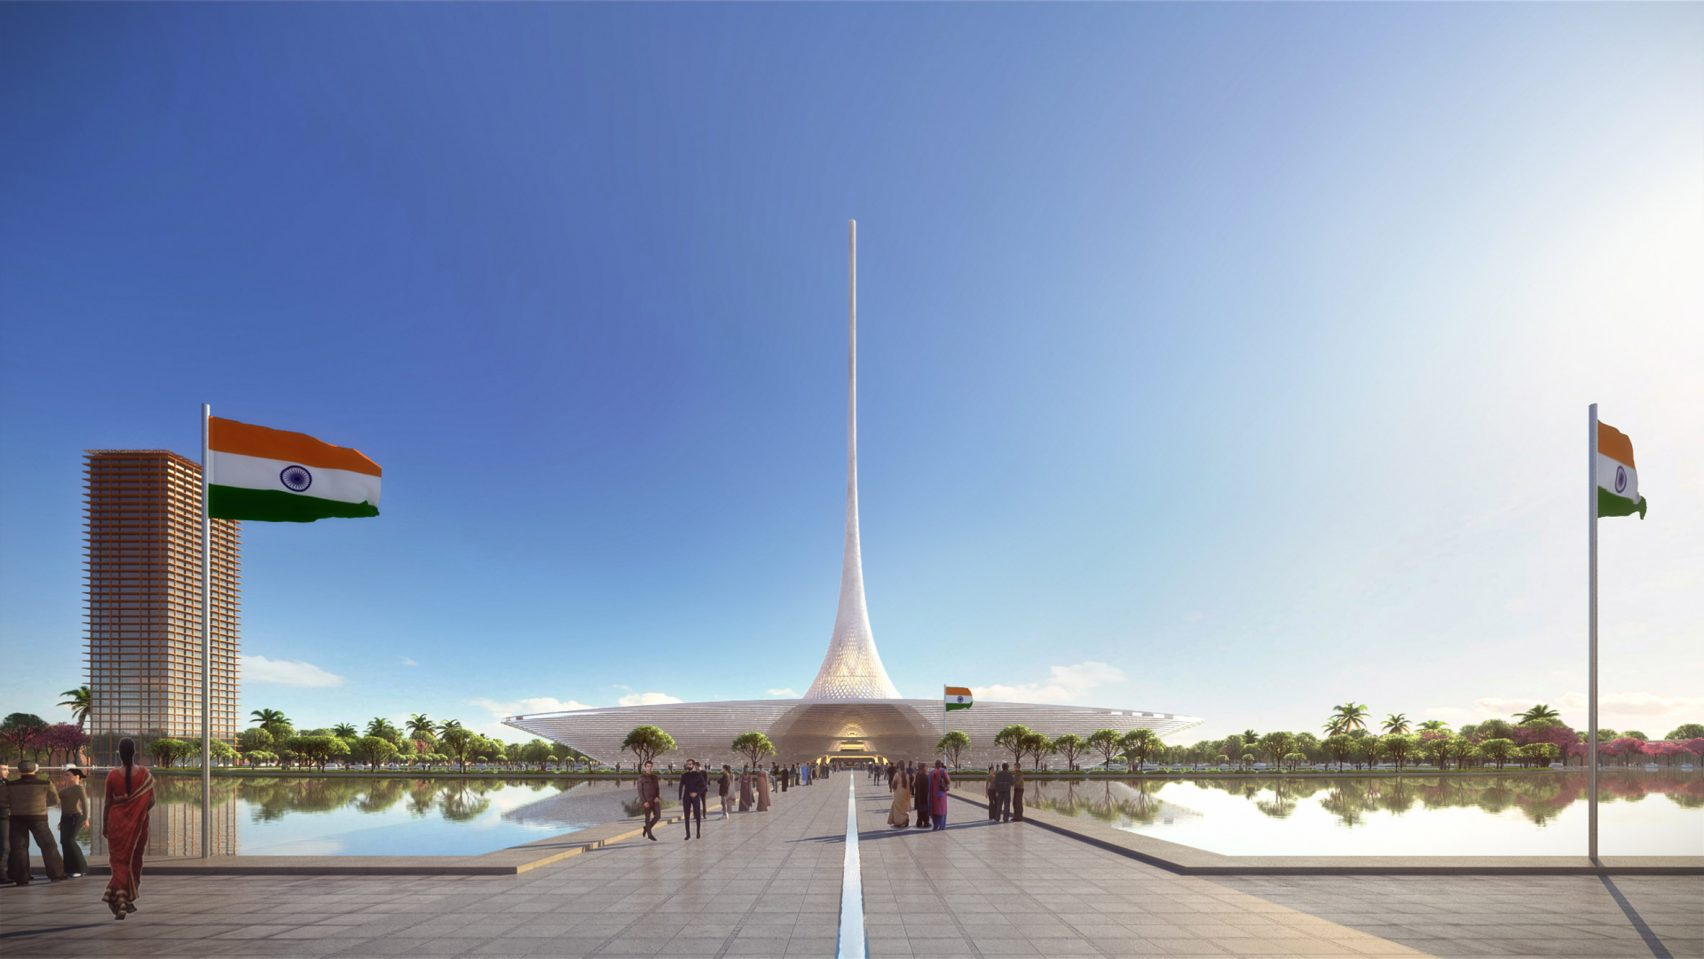 The legislative building features a 250-metre-high needle-like roof, and sits within a large freshwater lake.